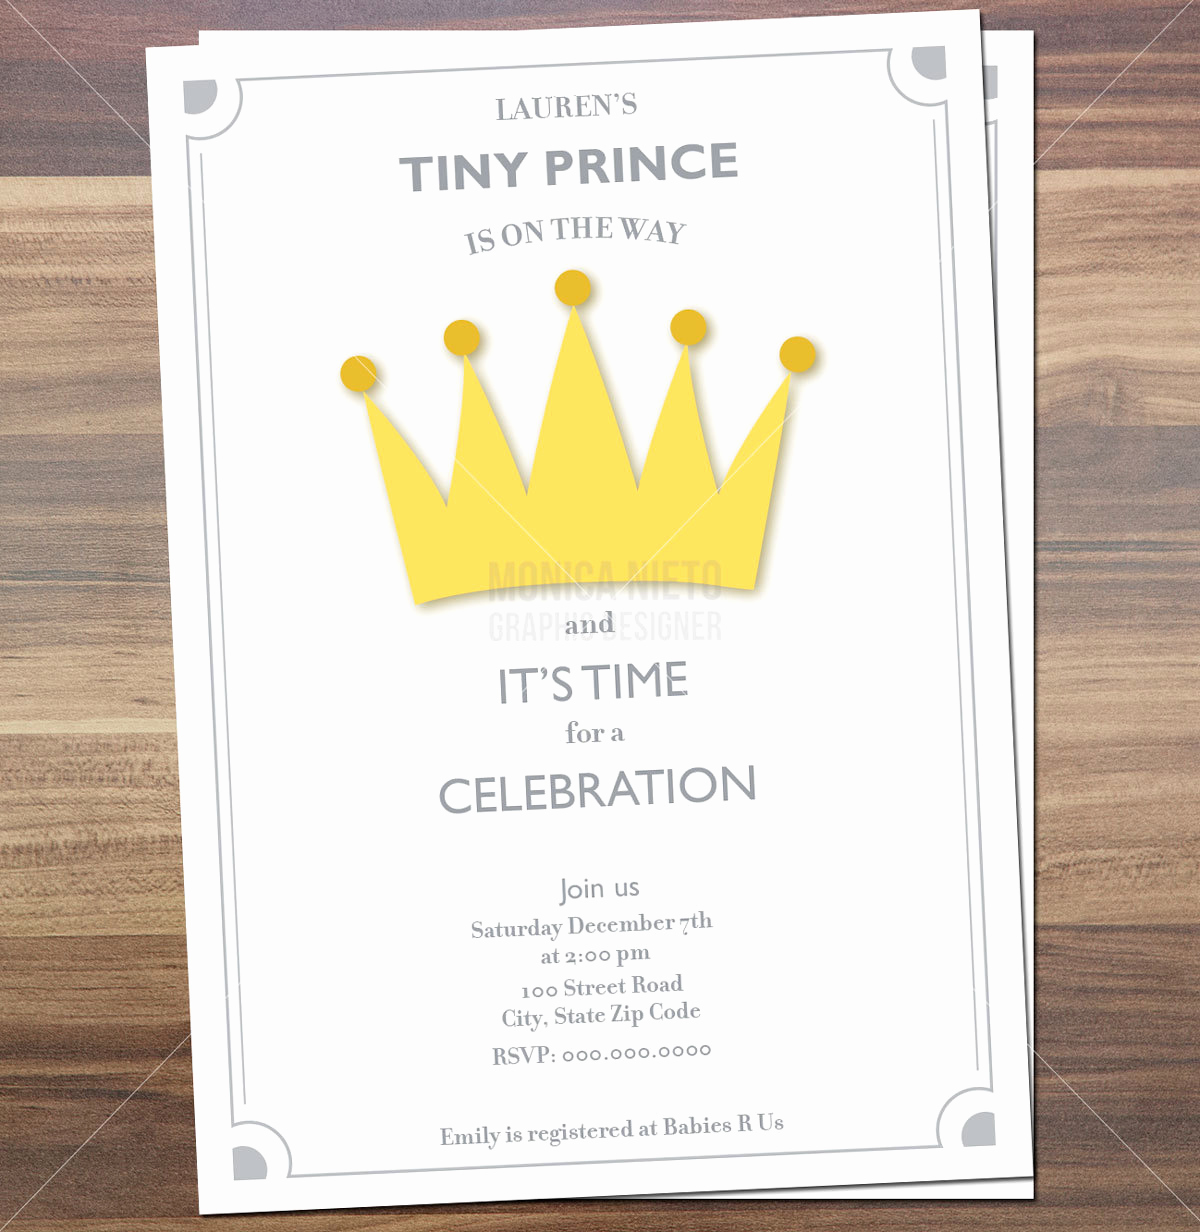 Royal Baby Shower Invitation Templates Beautiful Printable Royal Prince Baby Shower Invitation Little Prince